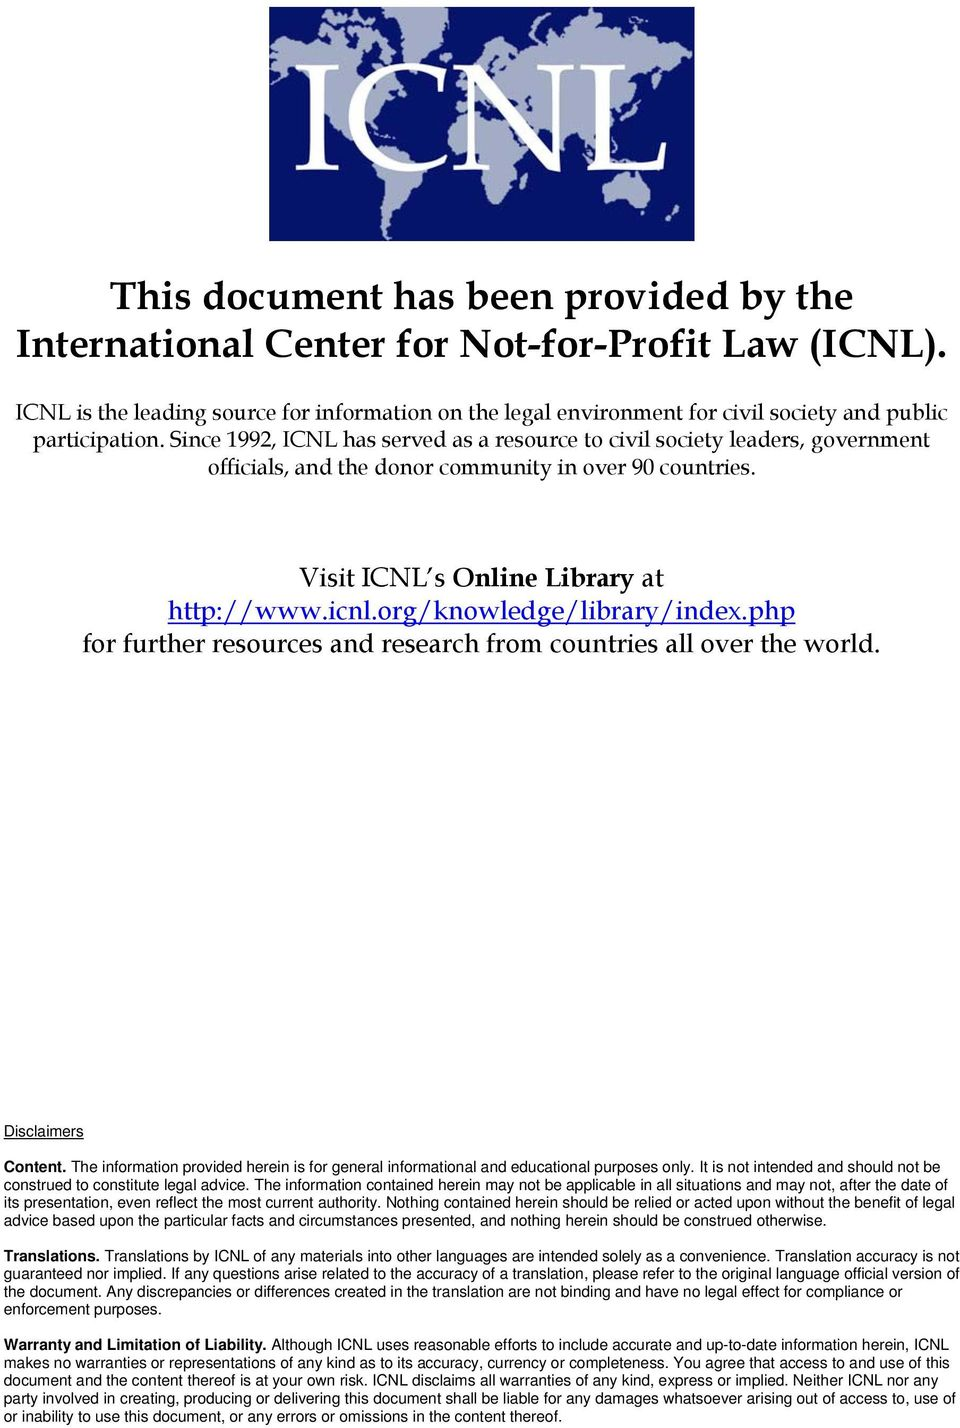 Since 1992, ICNL has served as a resource to civil society leaders, government officials, and the donor community in over 90 countries. Visit ICNL s Online Library at http://www.icnl.